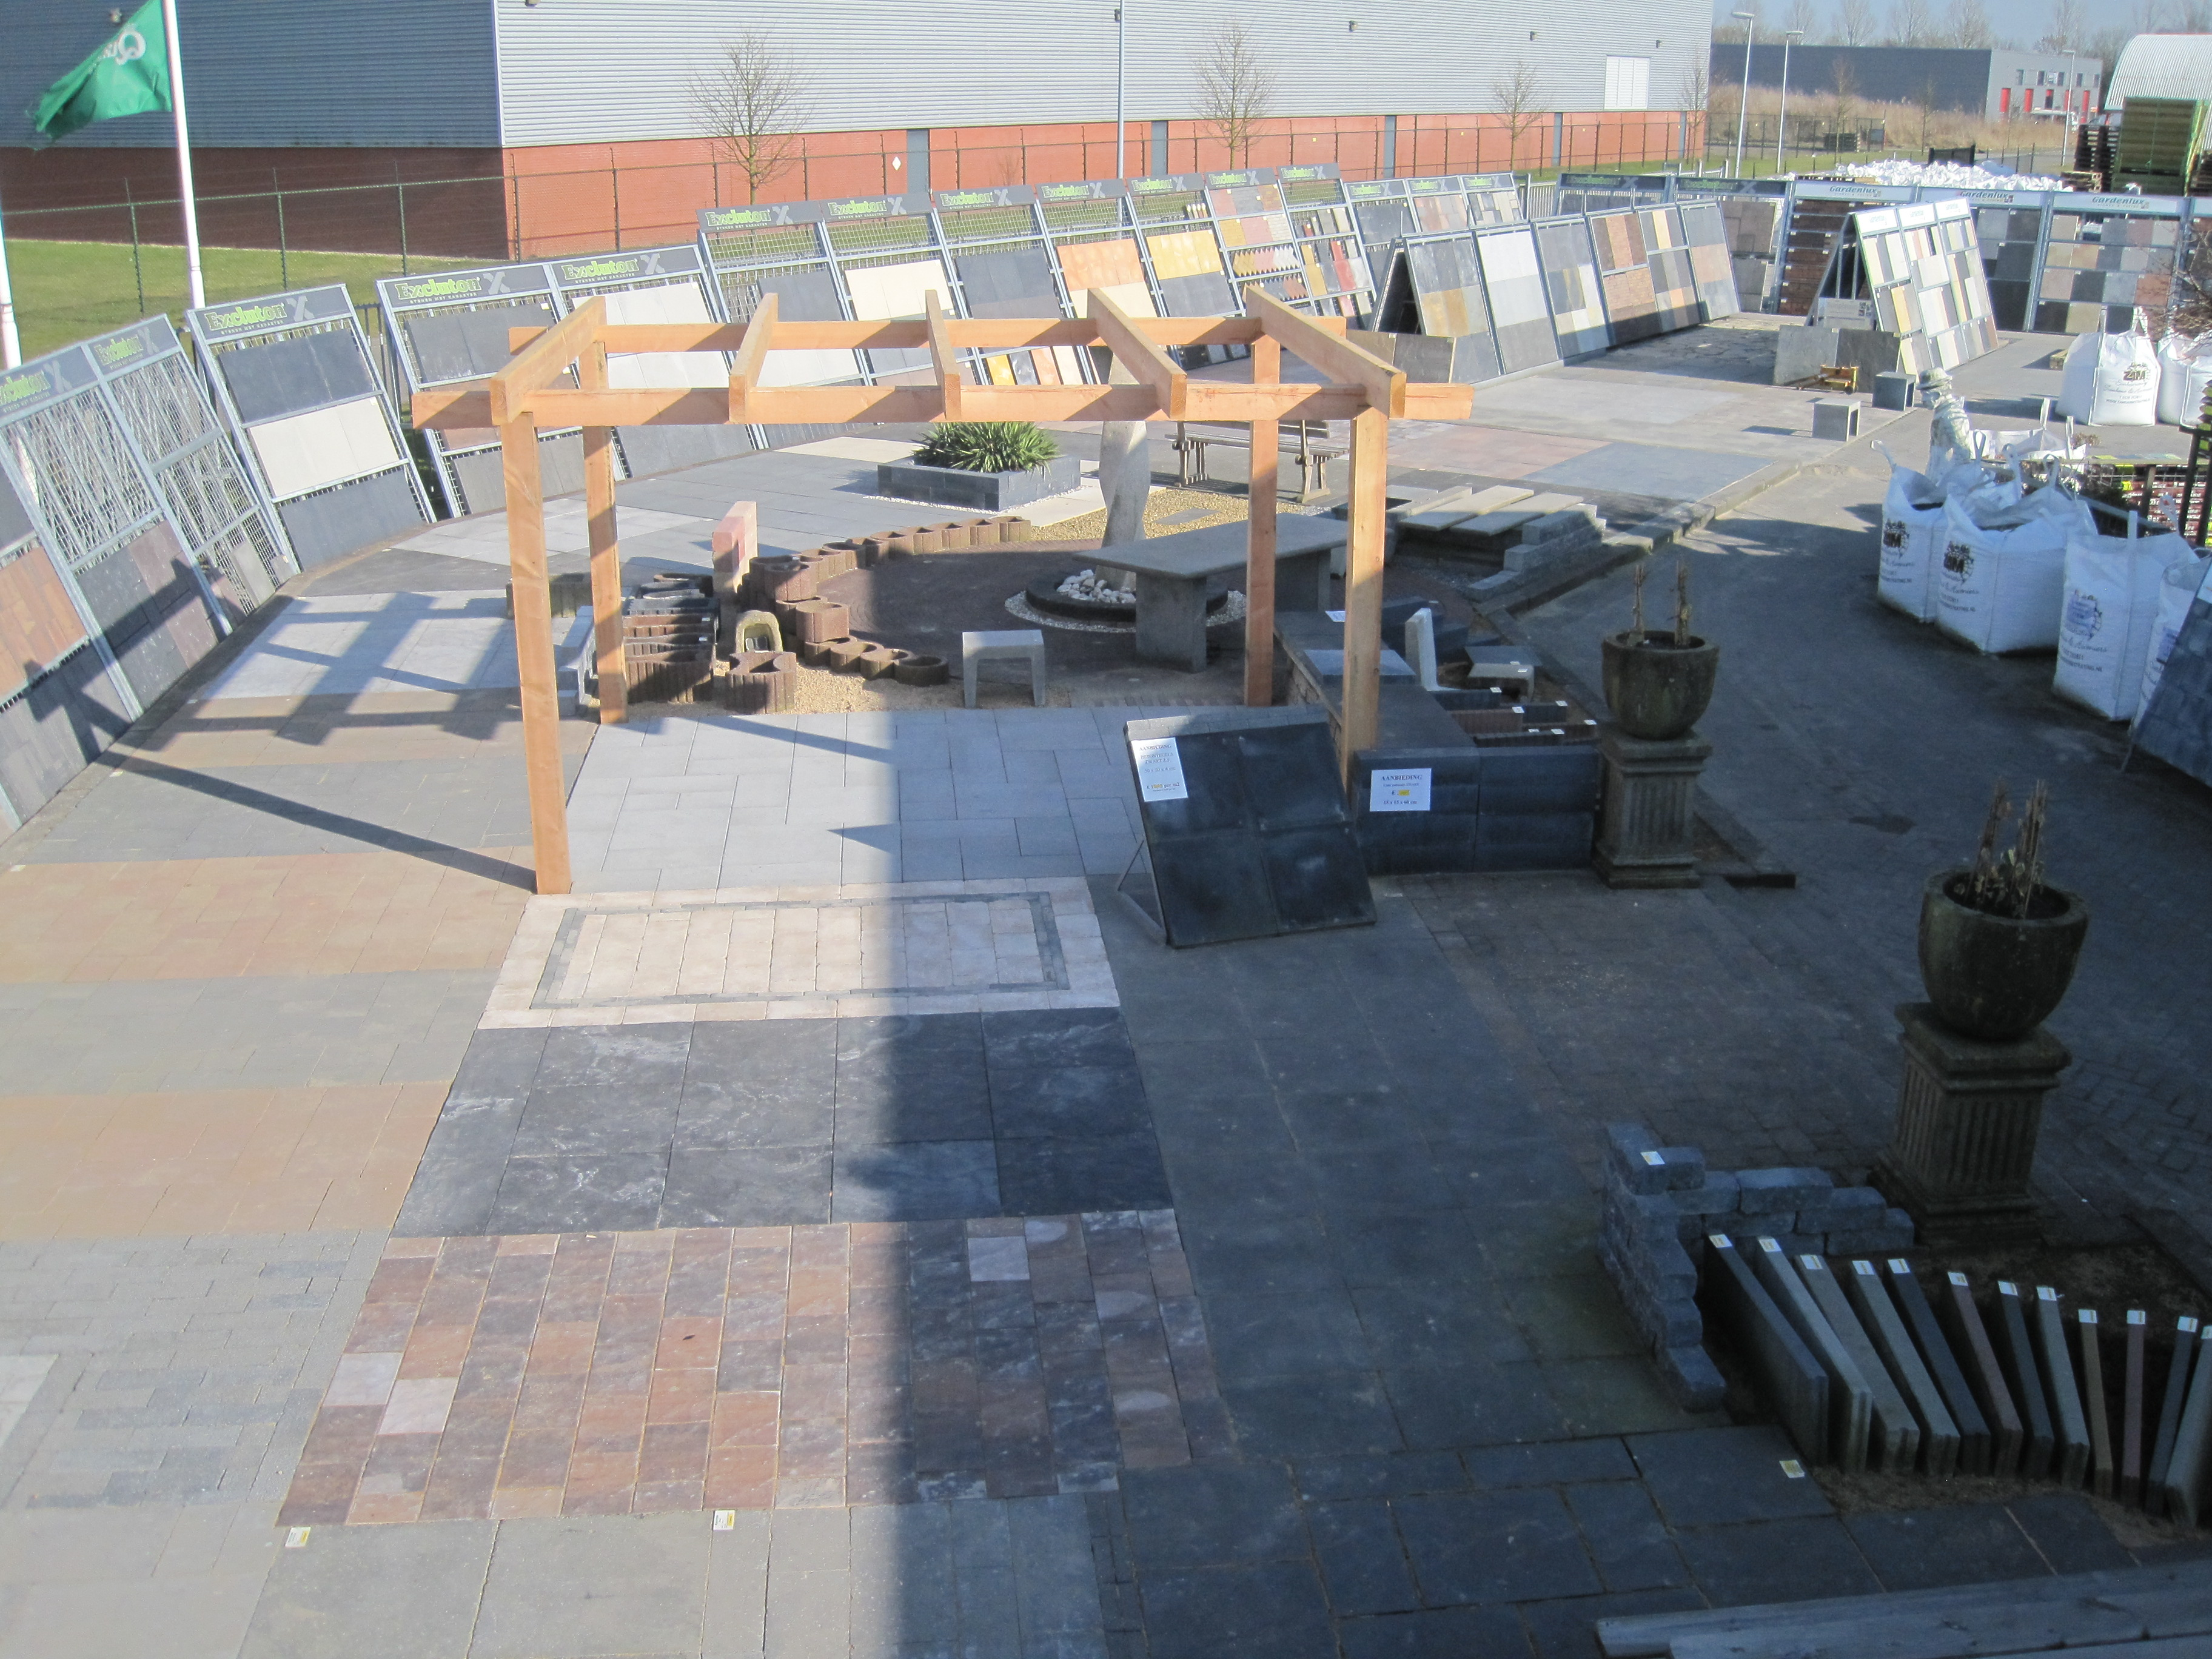 Showroom ZAM Sierbestrating Tuinhout & Hoveniers